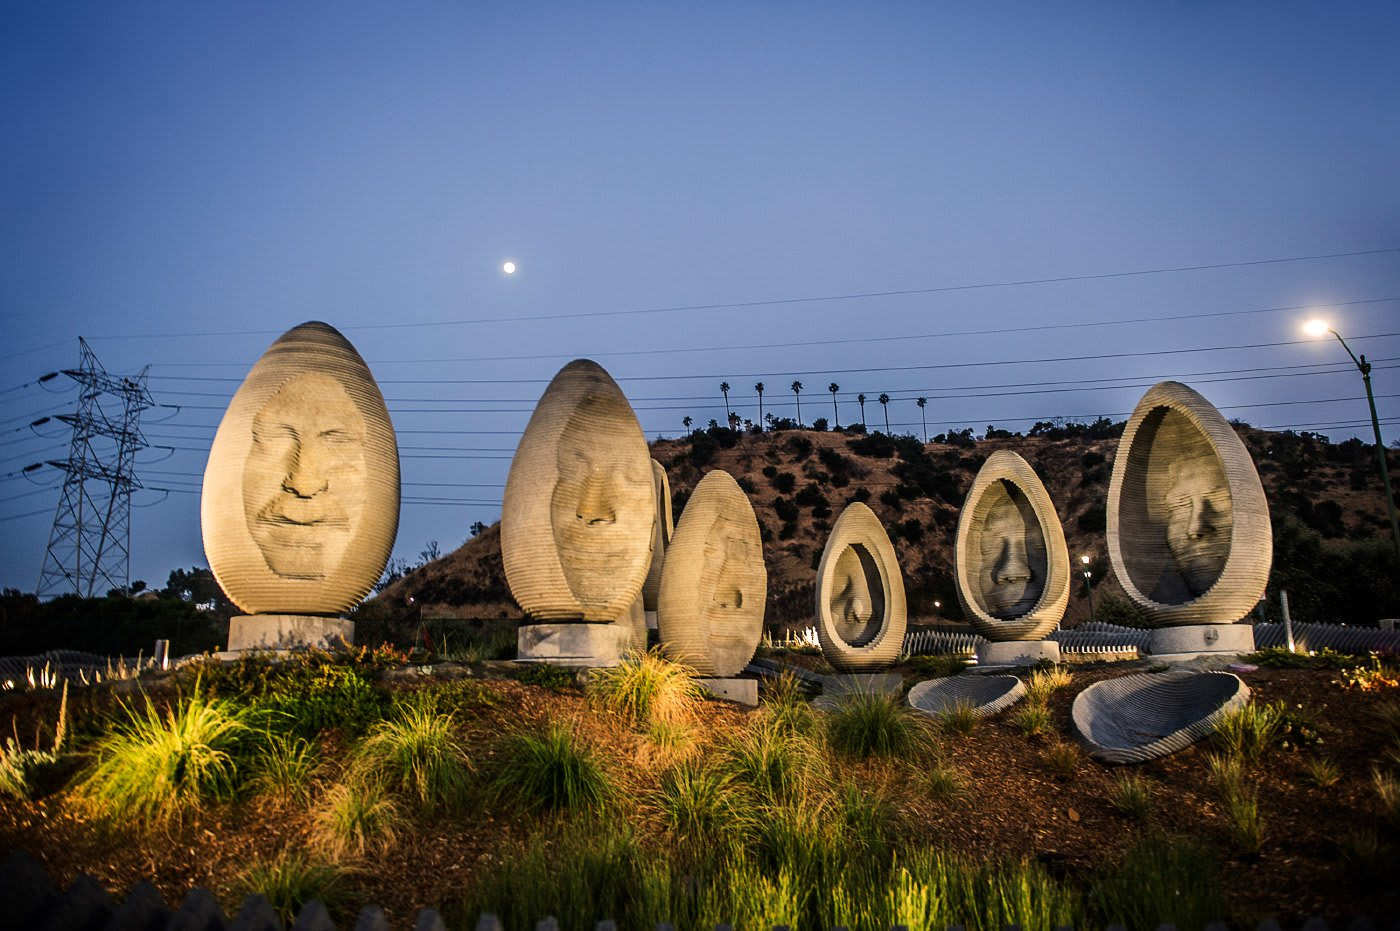 Riverside Roundabout: Faces of Elysian